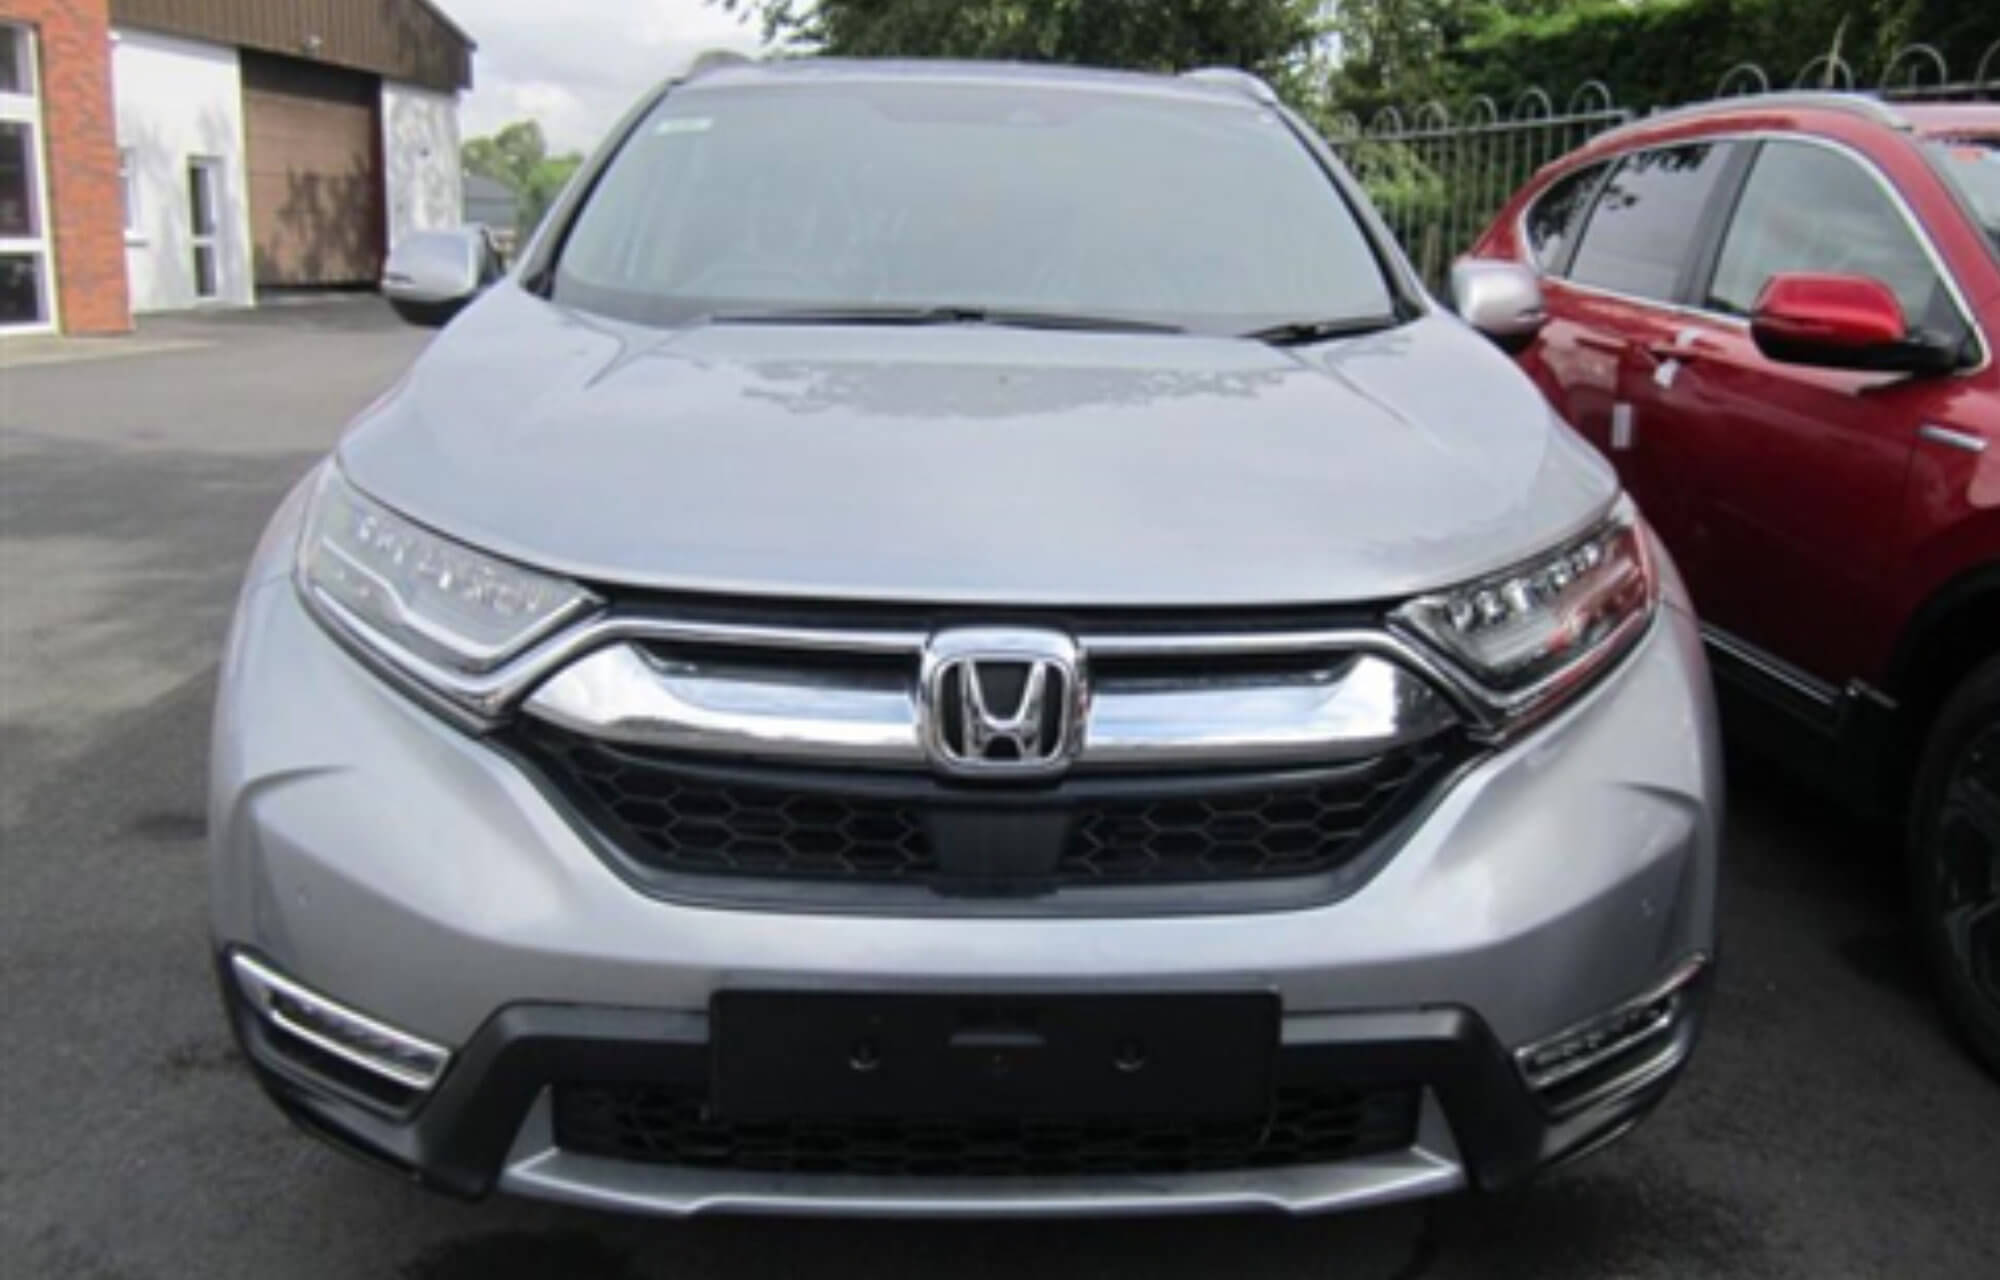 2019 CR-V Hybrid Executive available now